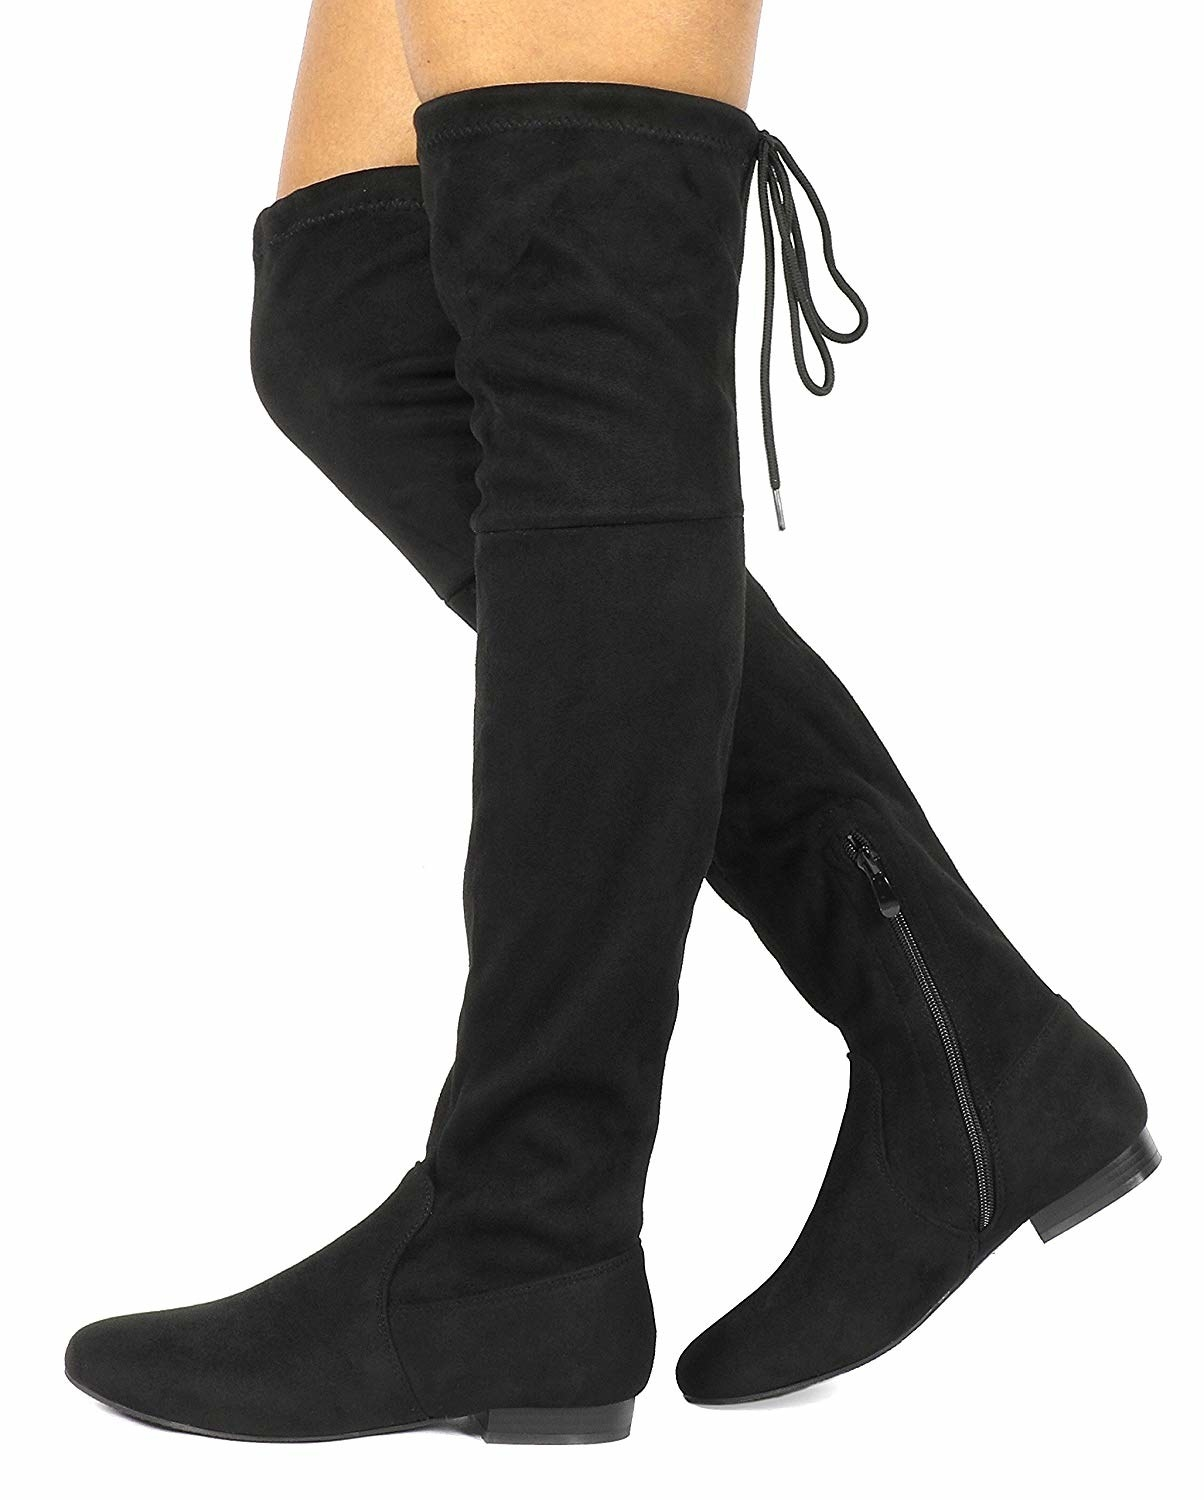 f72311302dc84 Over-the-knee boots you might be tempted to wear every single day. Should  you? Absolutely. It's your life. Live your truth.